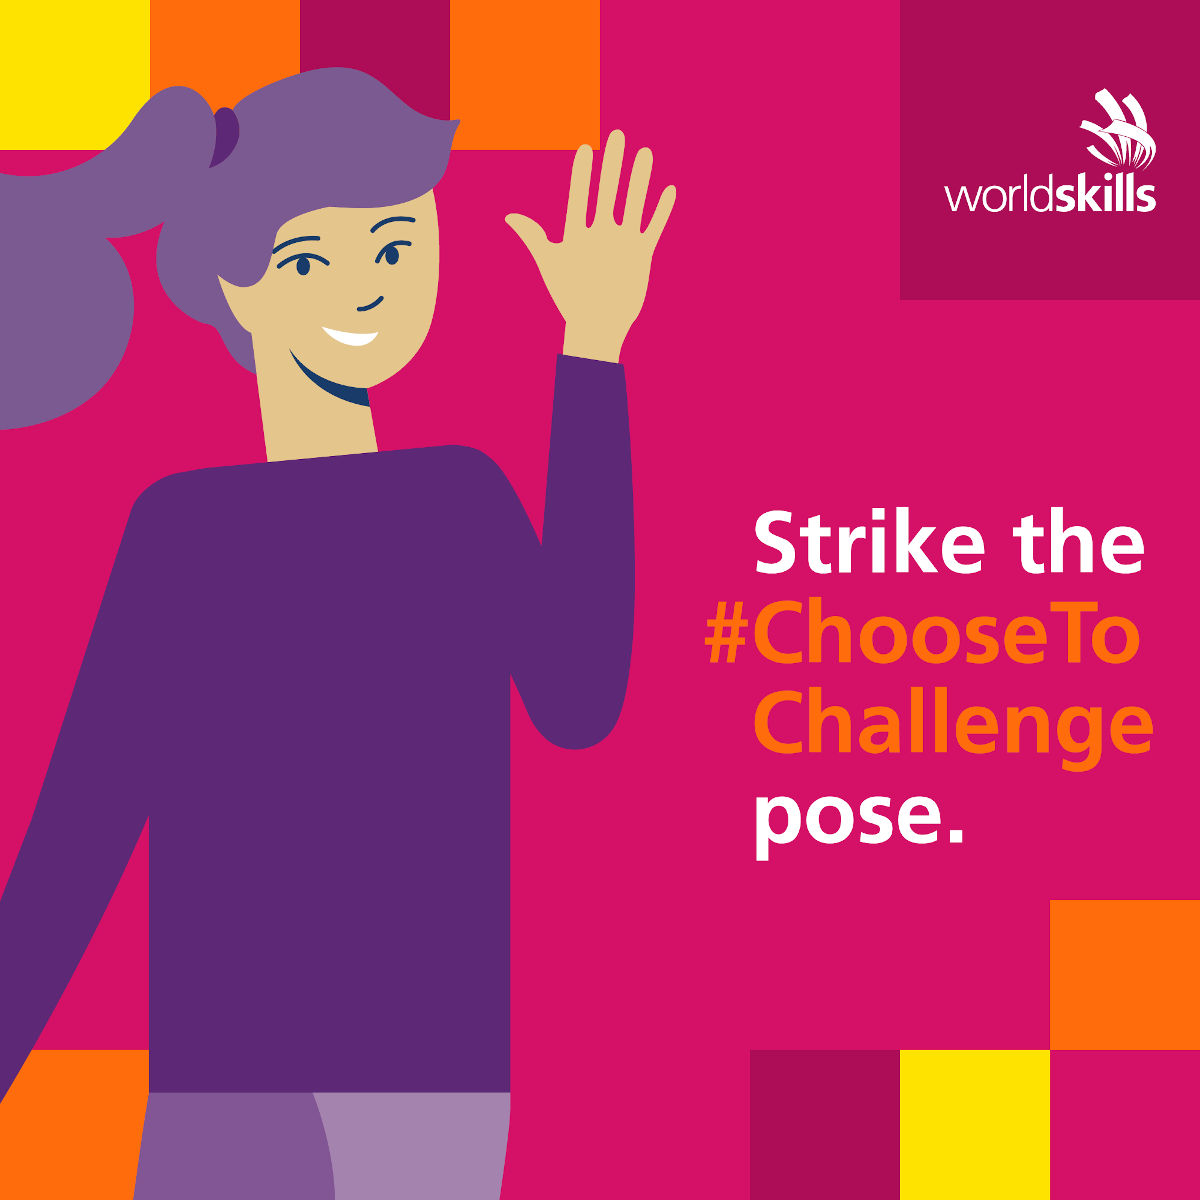 A promotional image for WorldSkills content theme in March 2021 - #ChooseToChallenge, which celebrated women in skills